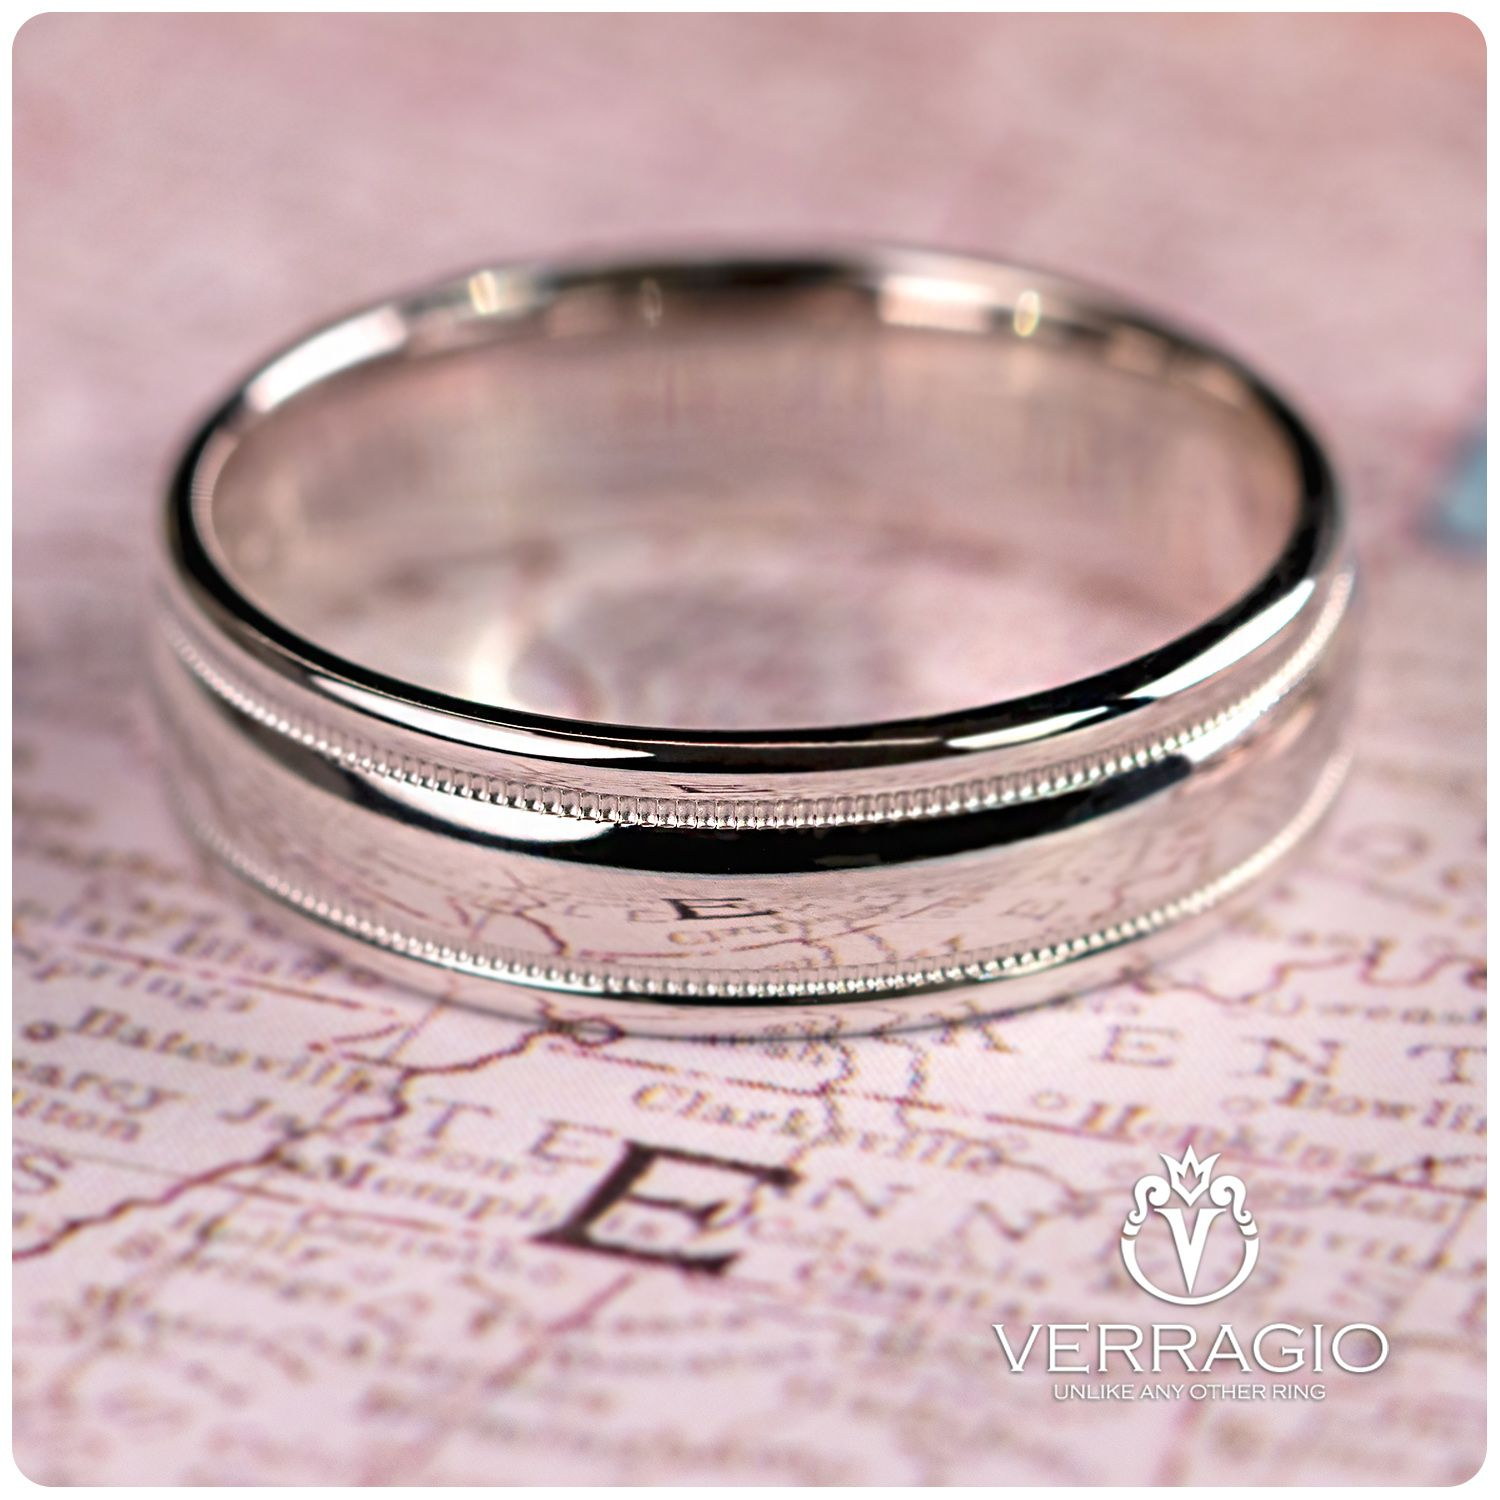 Verragio men's wedding band, available at Diamonds Direct. #weddingband #menseweddingband #mensring #mensaccessories